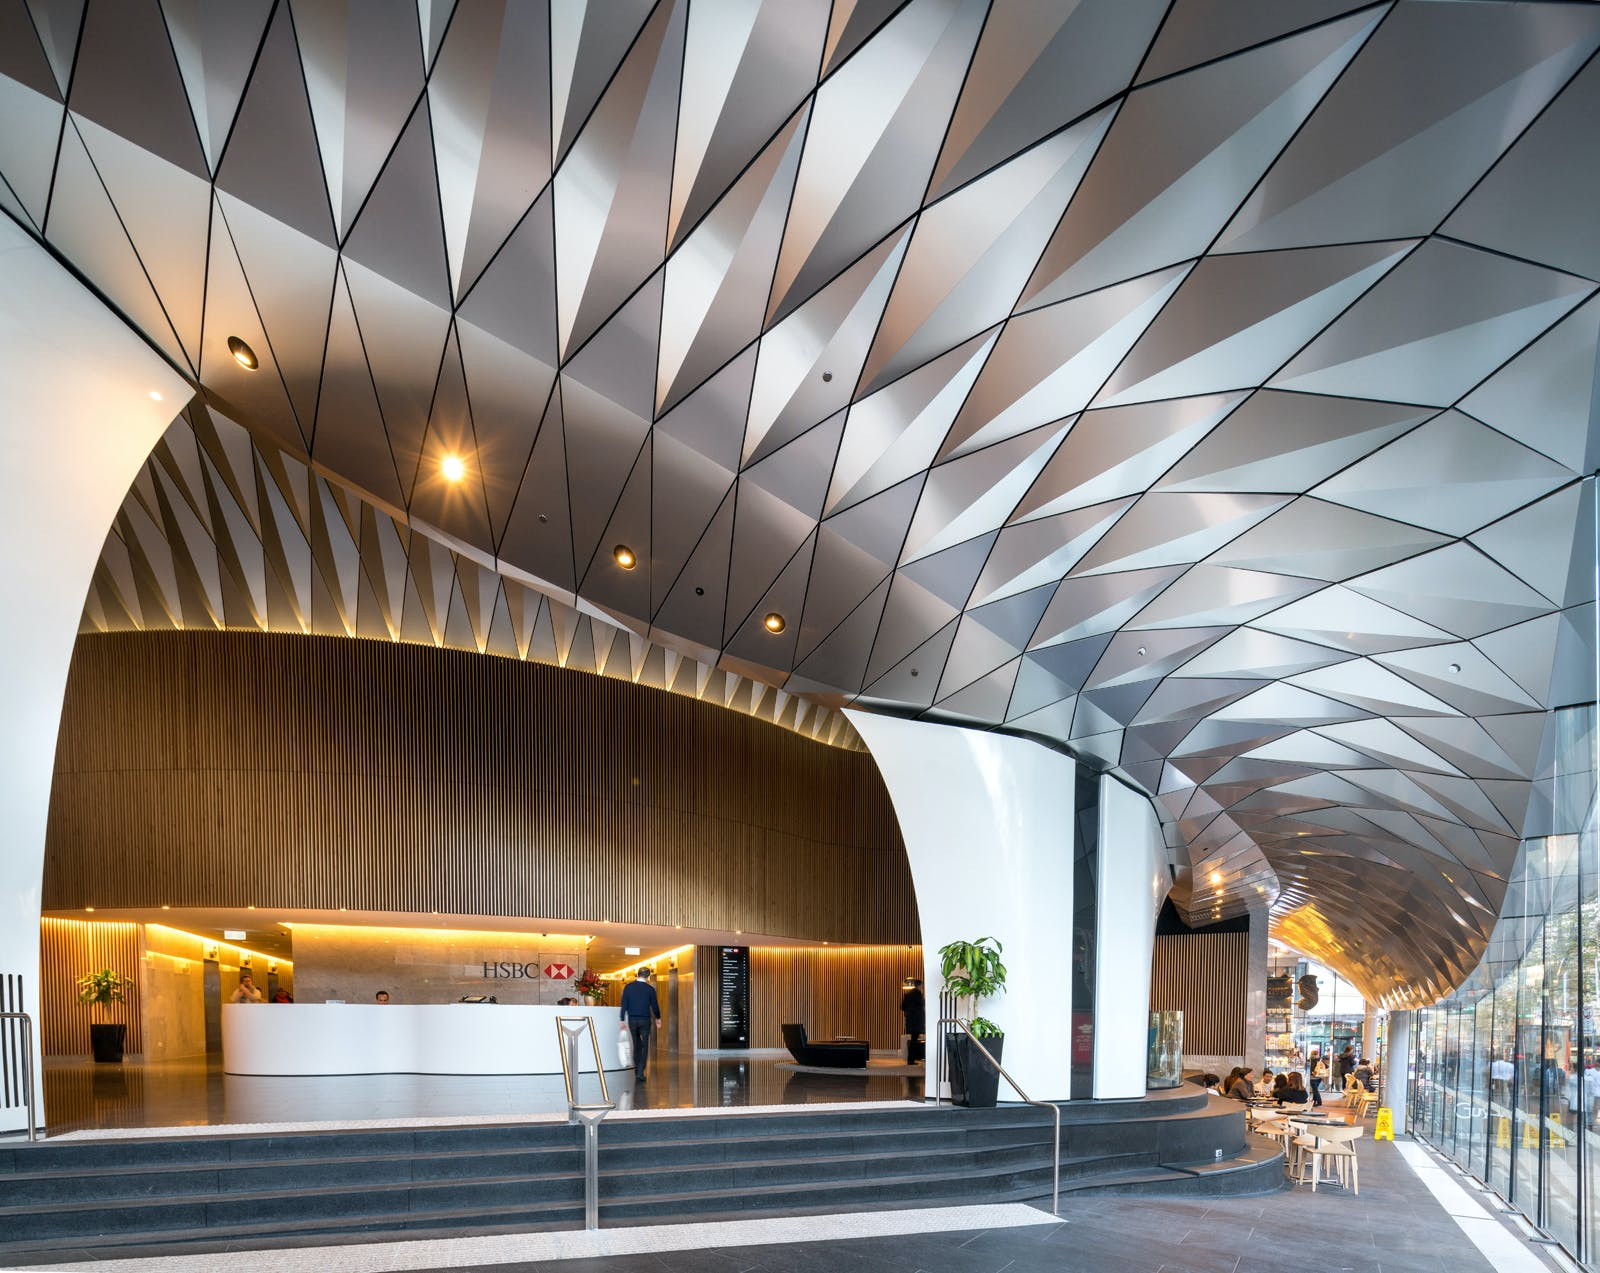 Architects Design Incredible Serpentine Awning With Diamond Shaped AlucobondR PLUS Panels